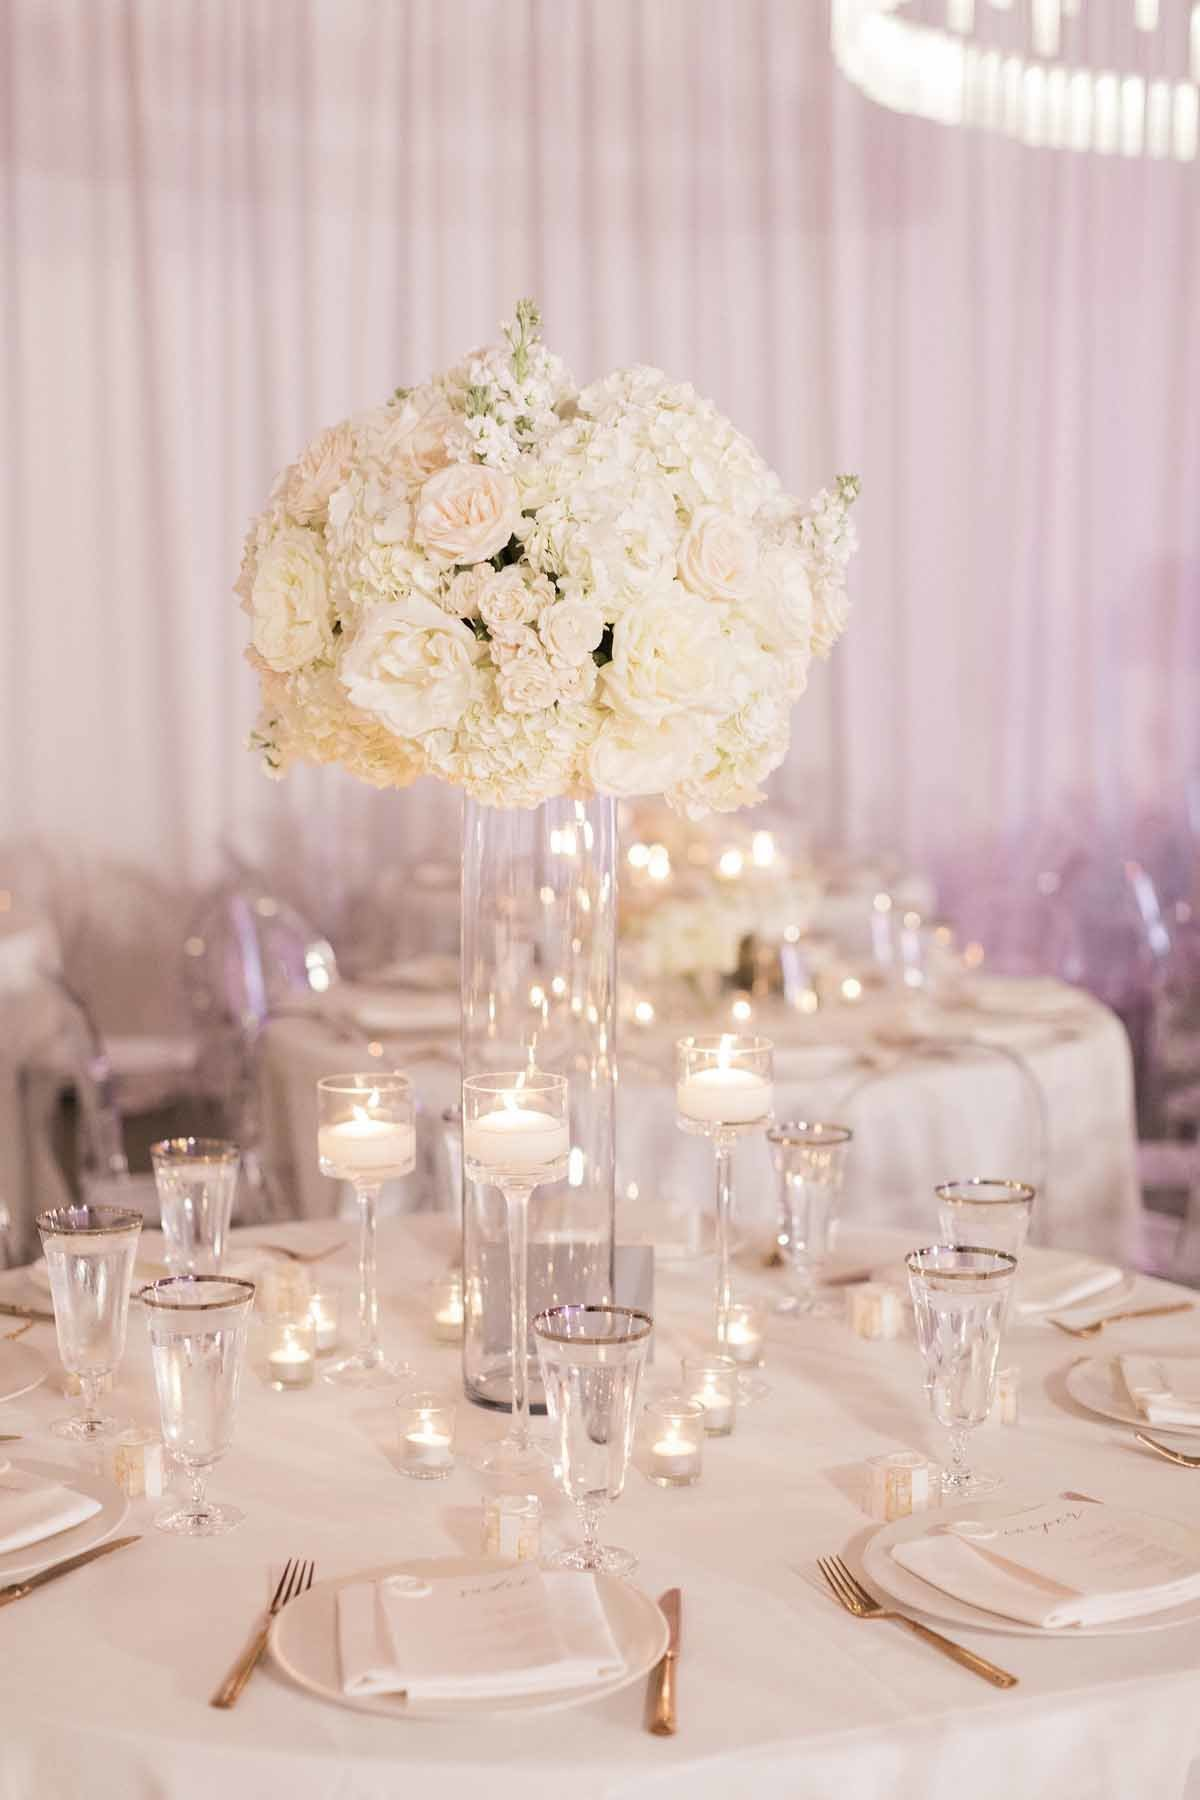 Such a romantic and soft look of all white roses  and hydrangea paired with tons of candles!